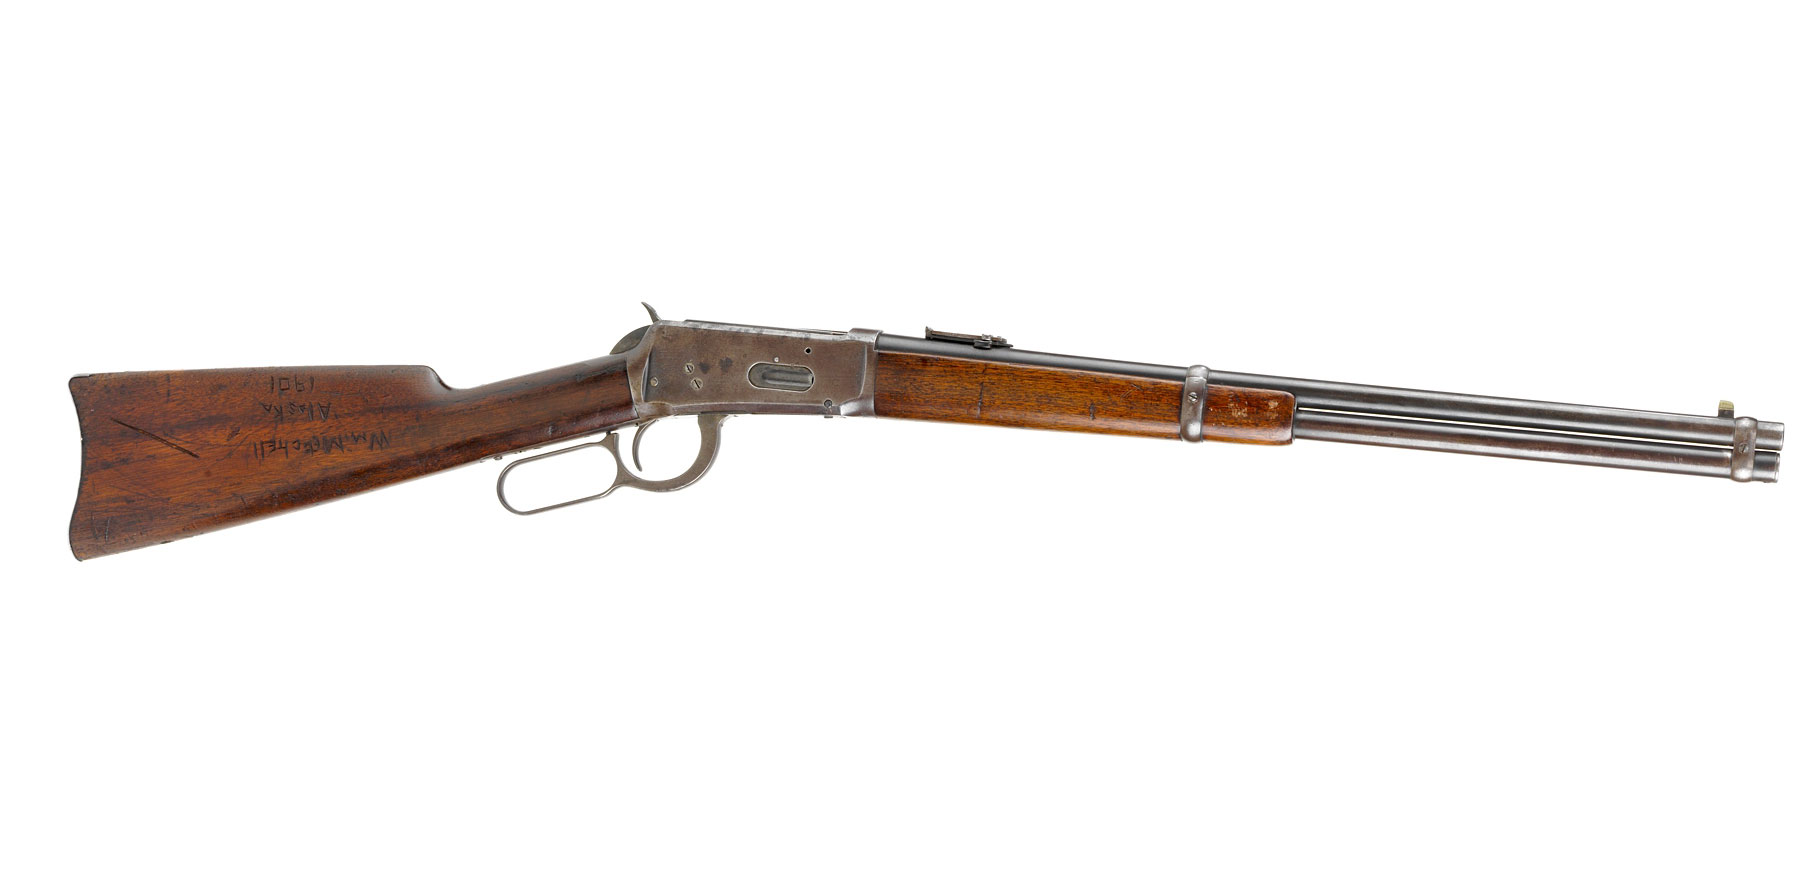 Winchester model 1894 lever-action carbine owned by William Mitchell